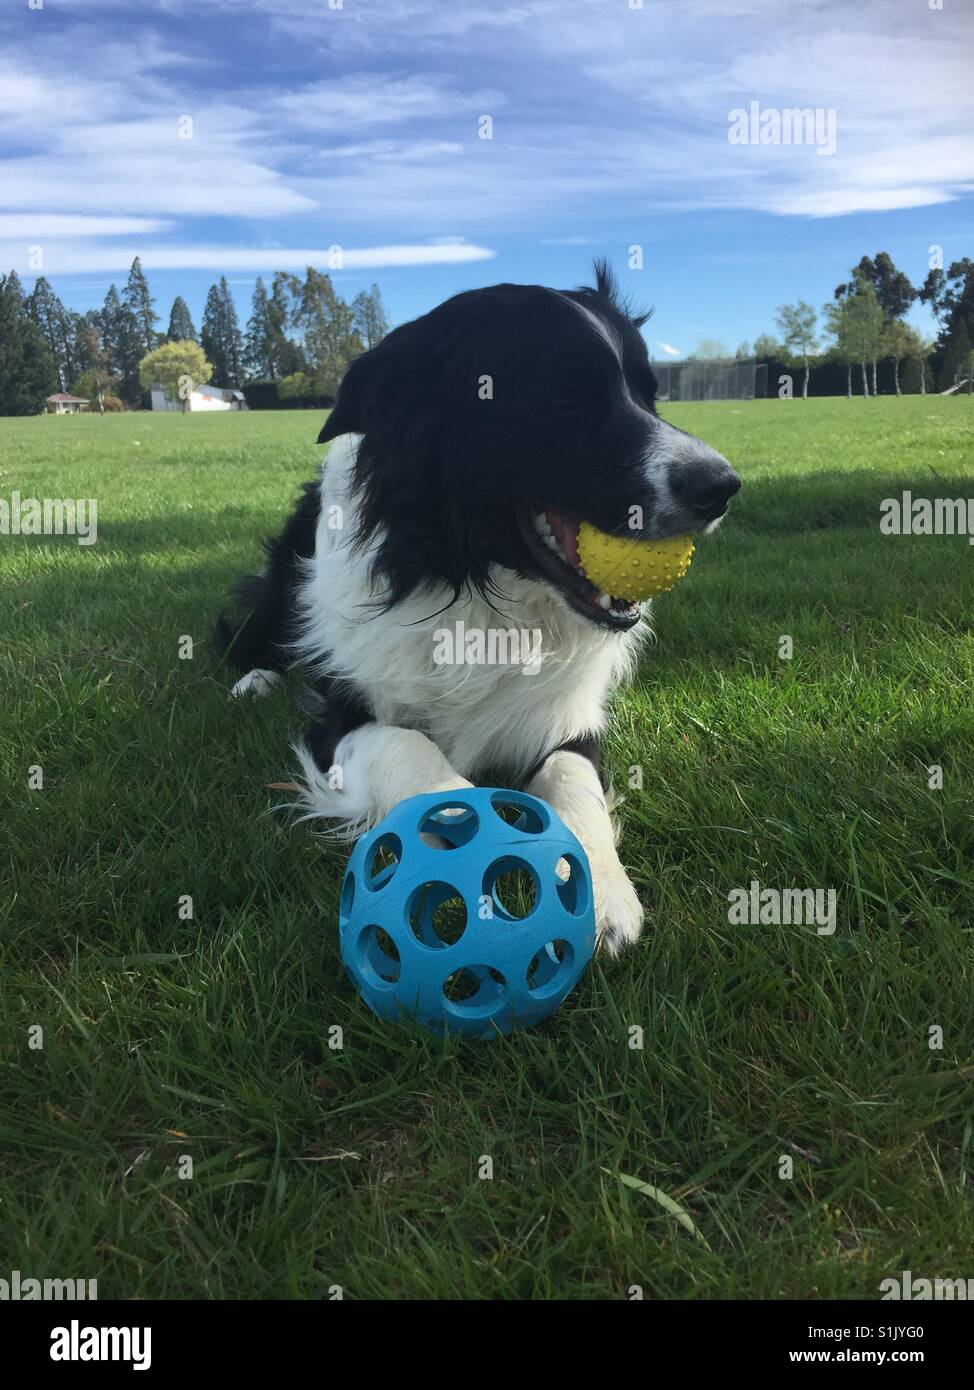 Dog in park with balls - Stock Image